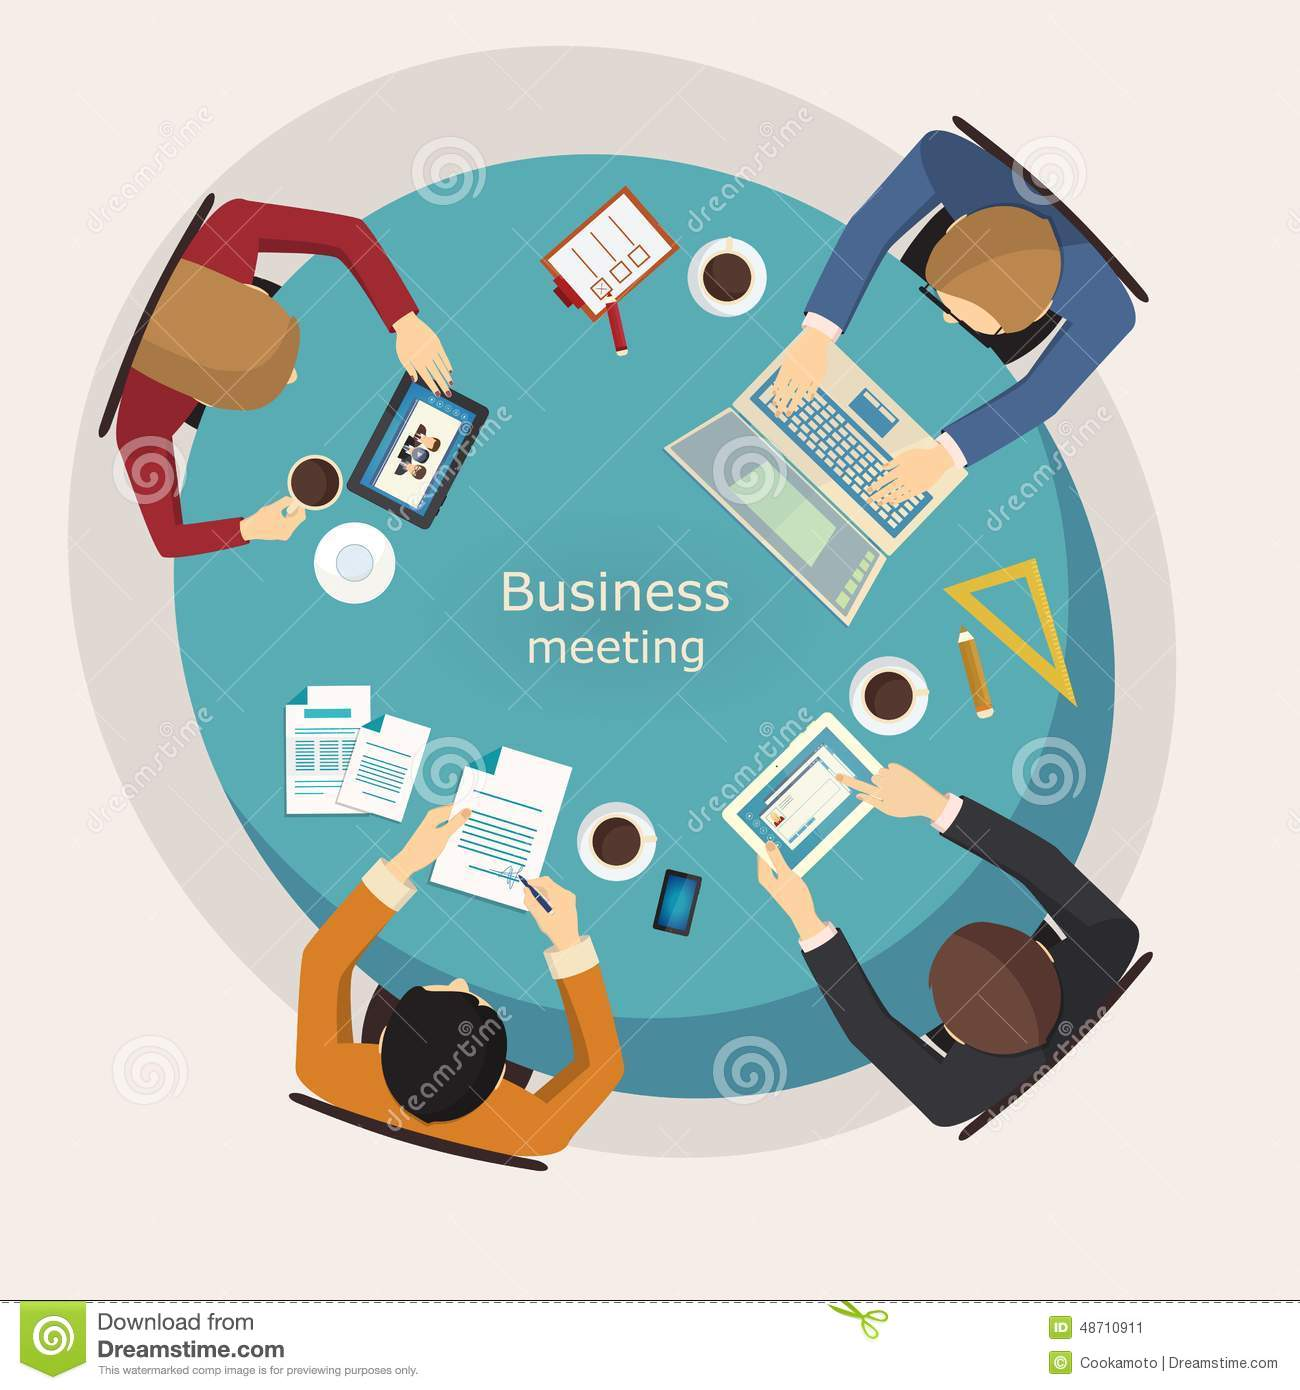 Round table meeting icon - Business Meeting And Brainstorming Flat Design Stock